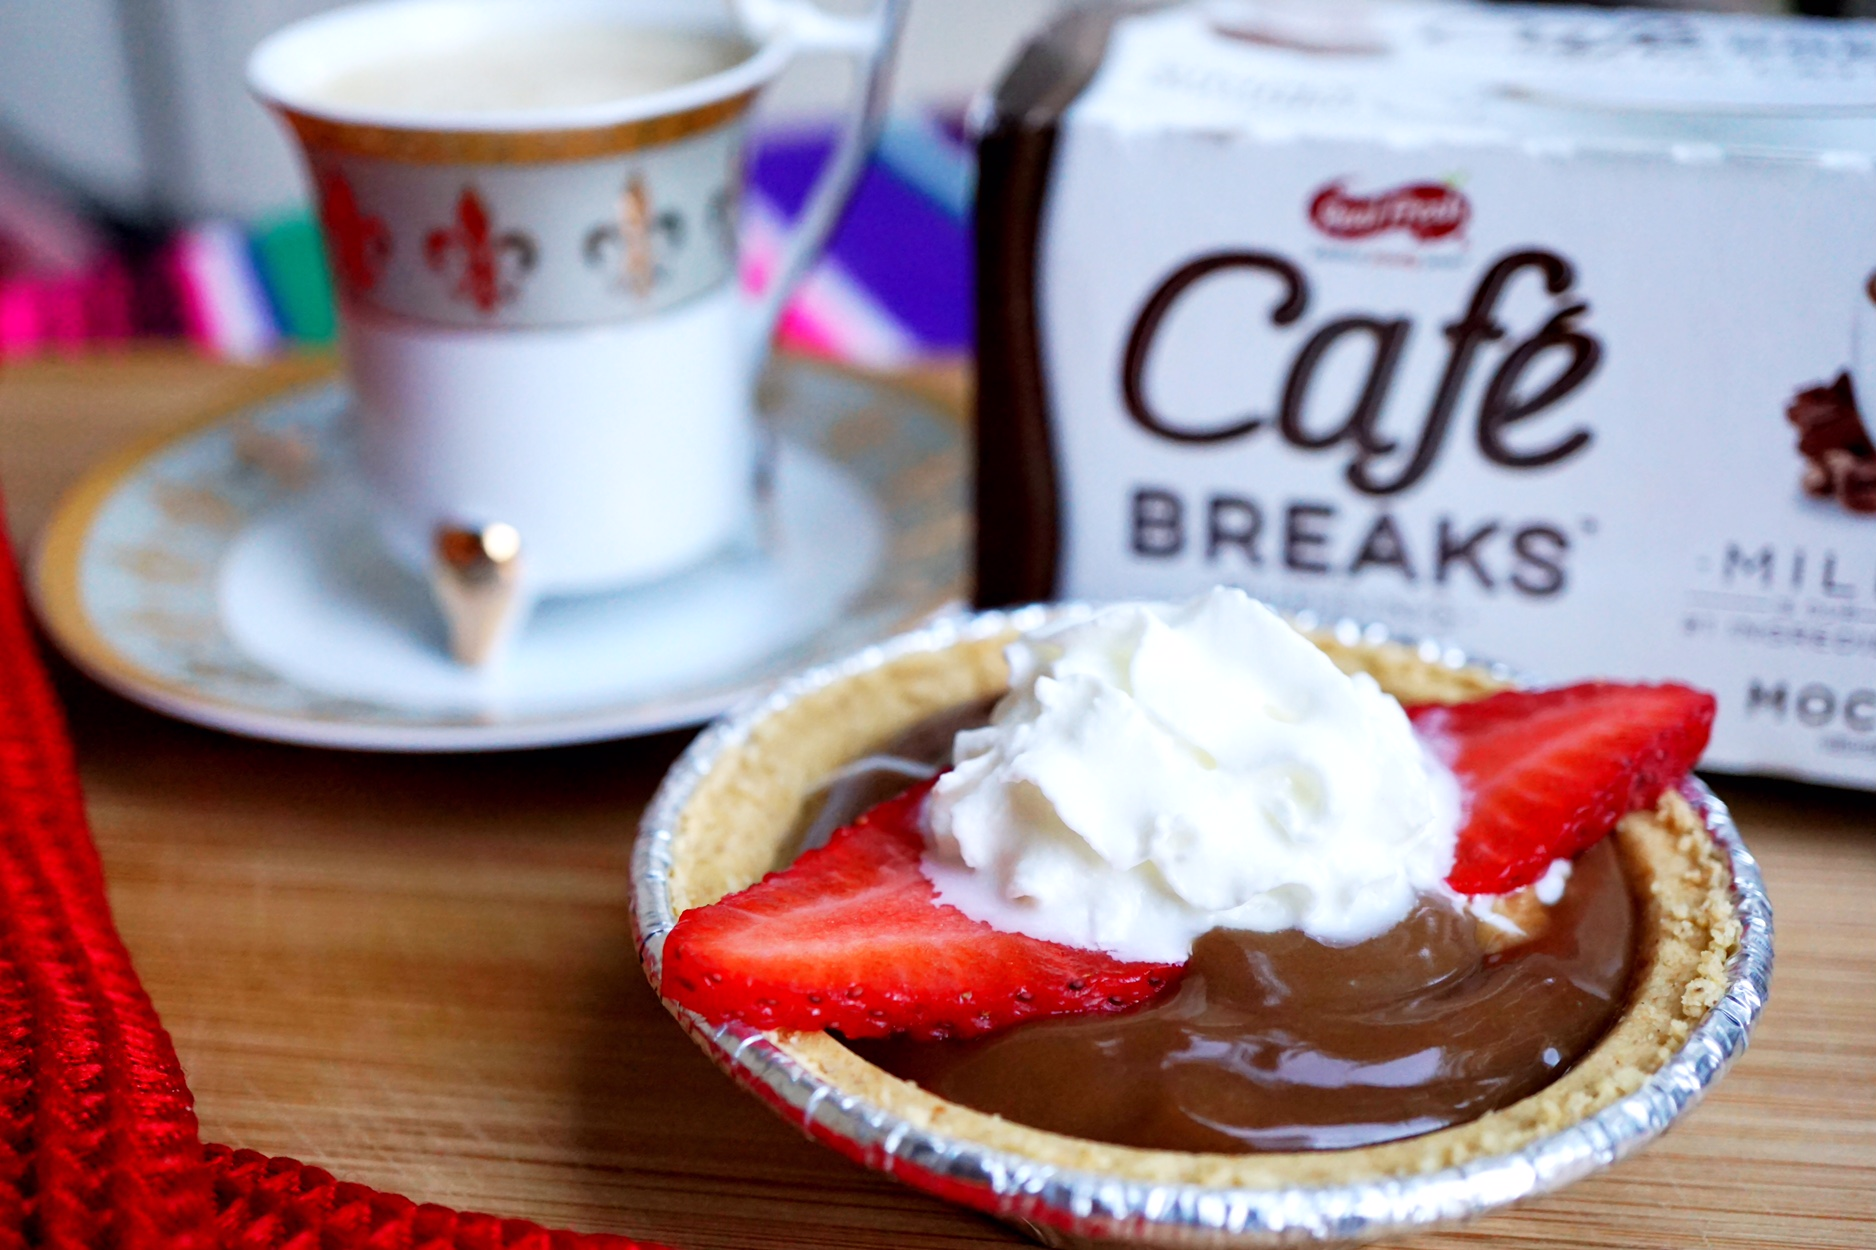 @sparklinglala's cover photo for 'The Perfect 200 Calorie Mocha Latte Mini Pie with Cafe Breaks'